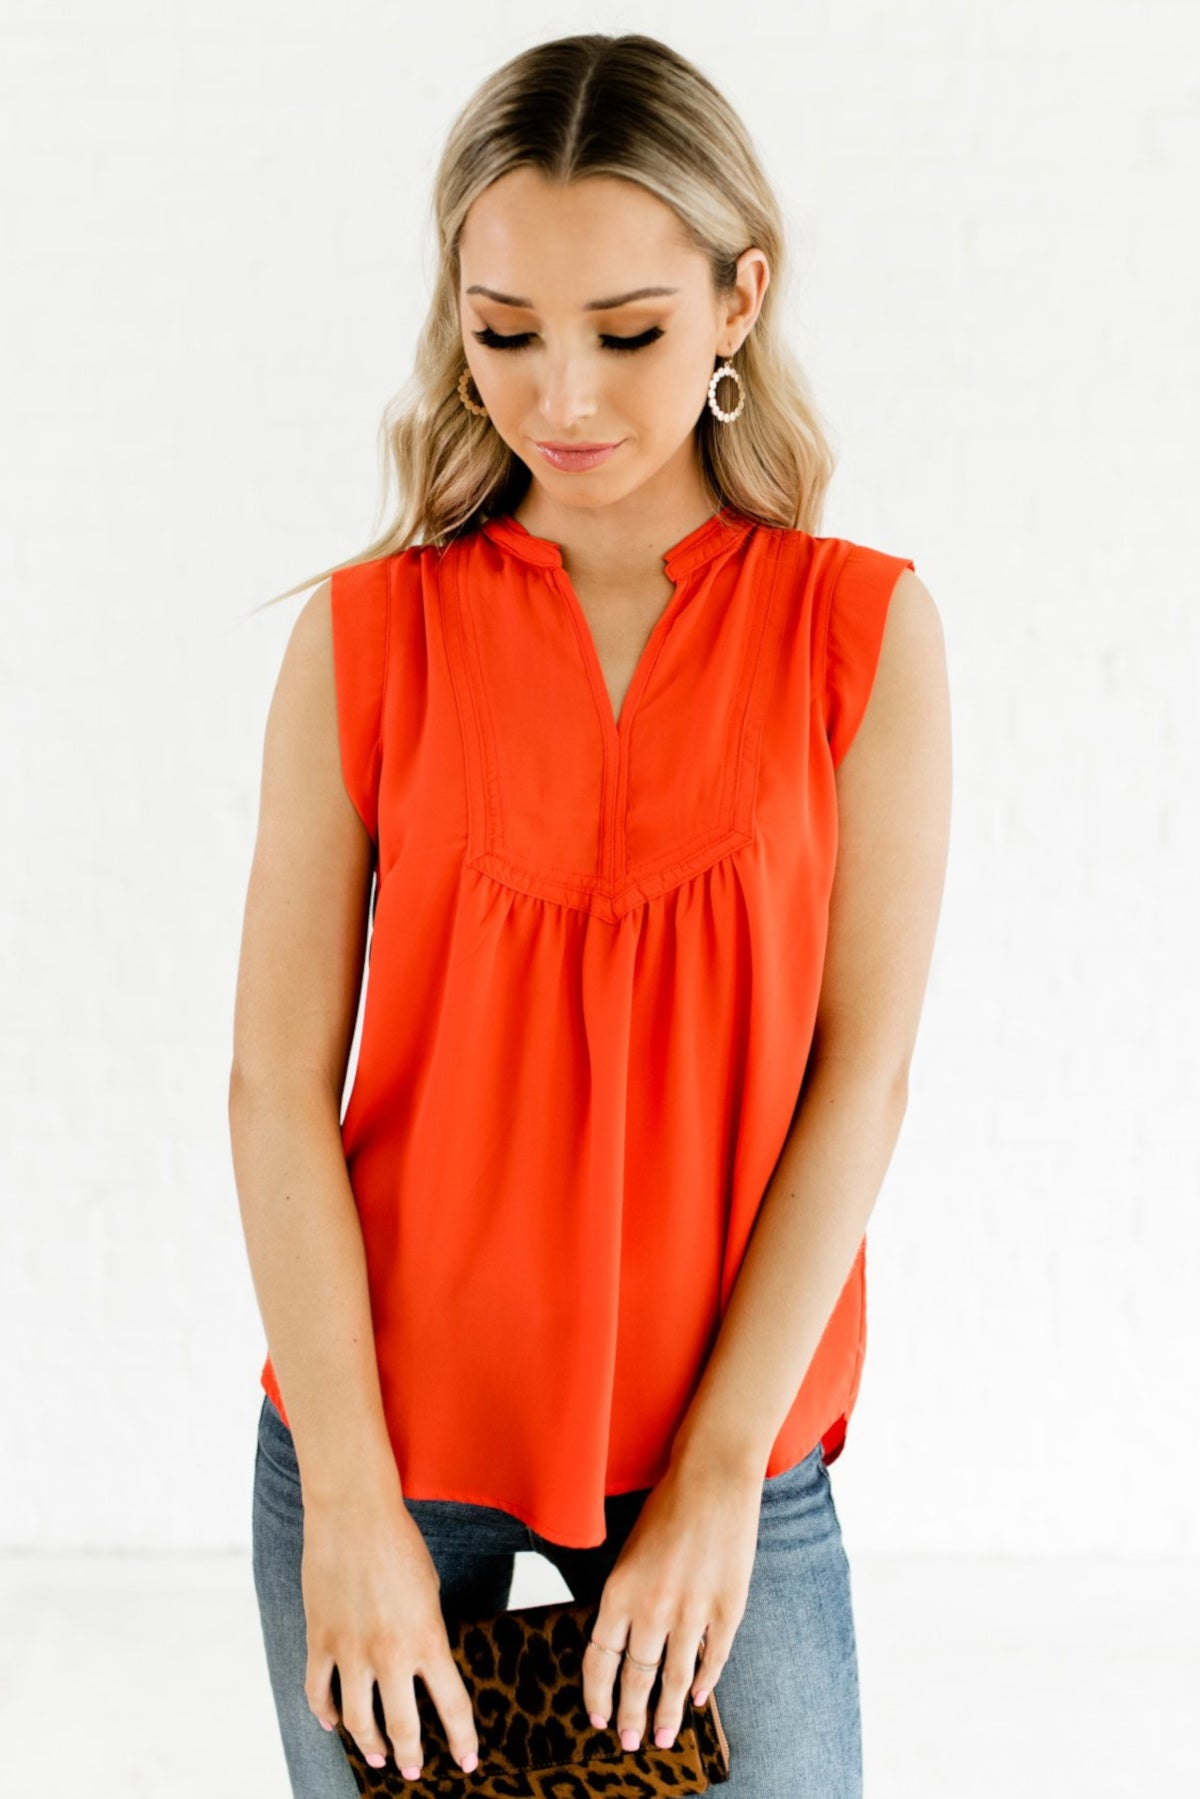 Red Orange High-Low Hem Boutique Blouses for Women